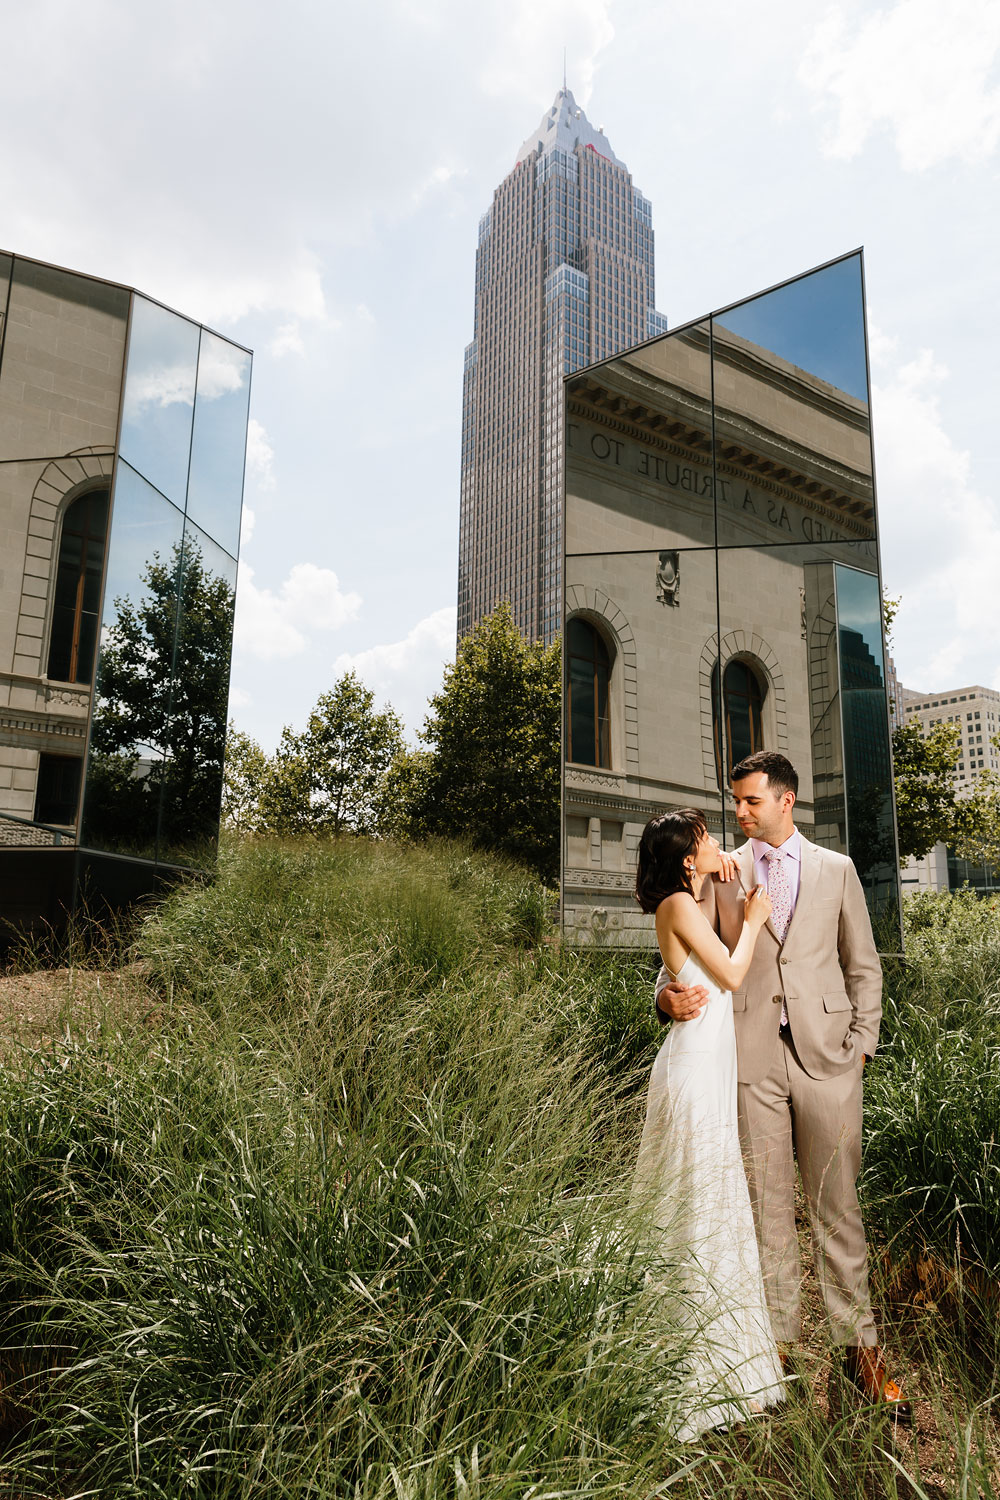 wedding-photographers-in-cleveland-ohio-downtown-orchard-hills-center-pattersons-fruit-farm-37.jpg